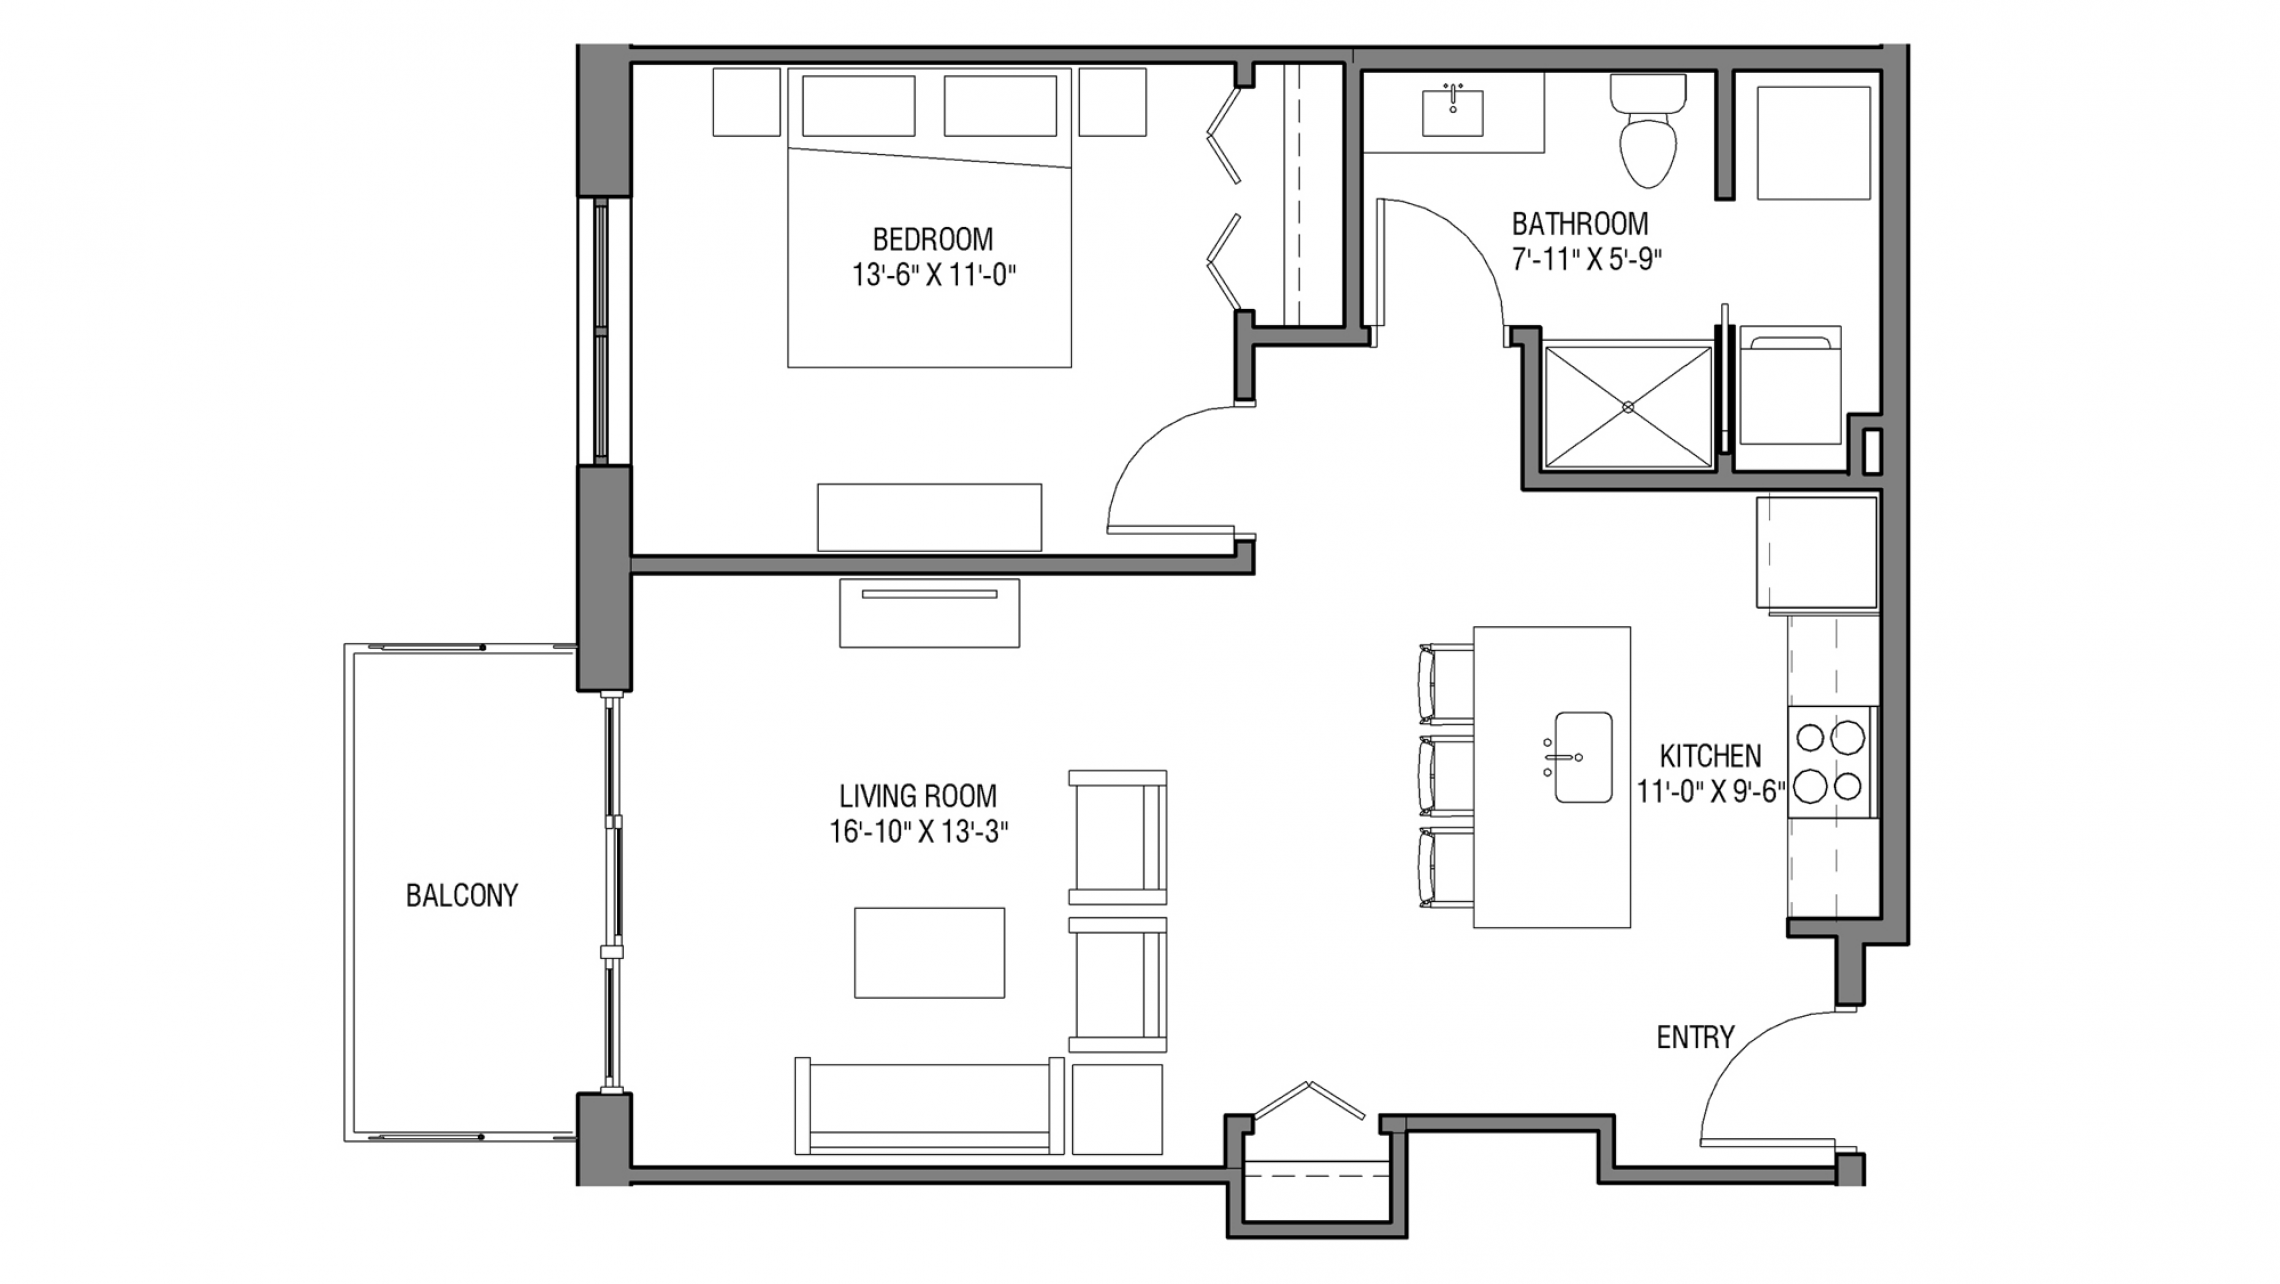 ULI Nine Line 319 - One Bedroom, One Bathroom